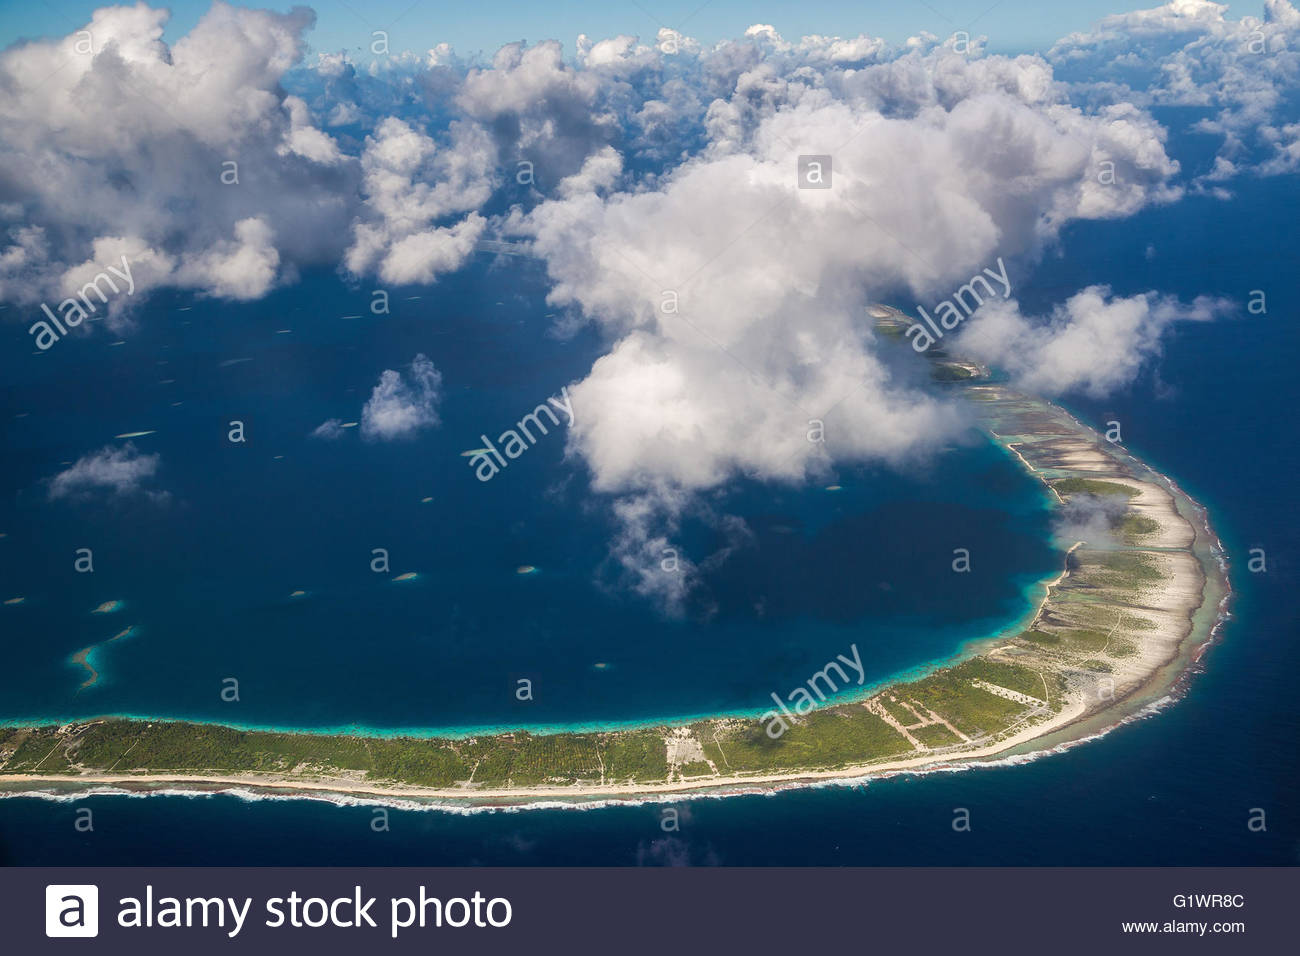 Flying over the Tuamotu islands (French Polynesia) - Stock Image